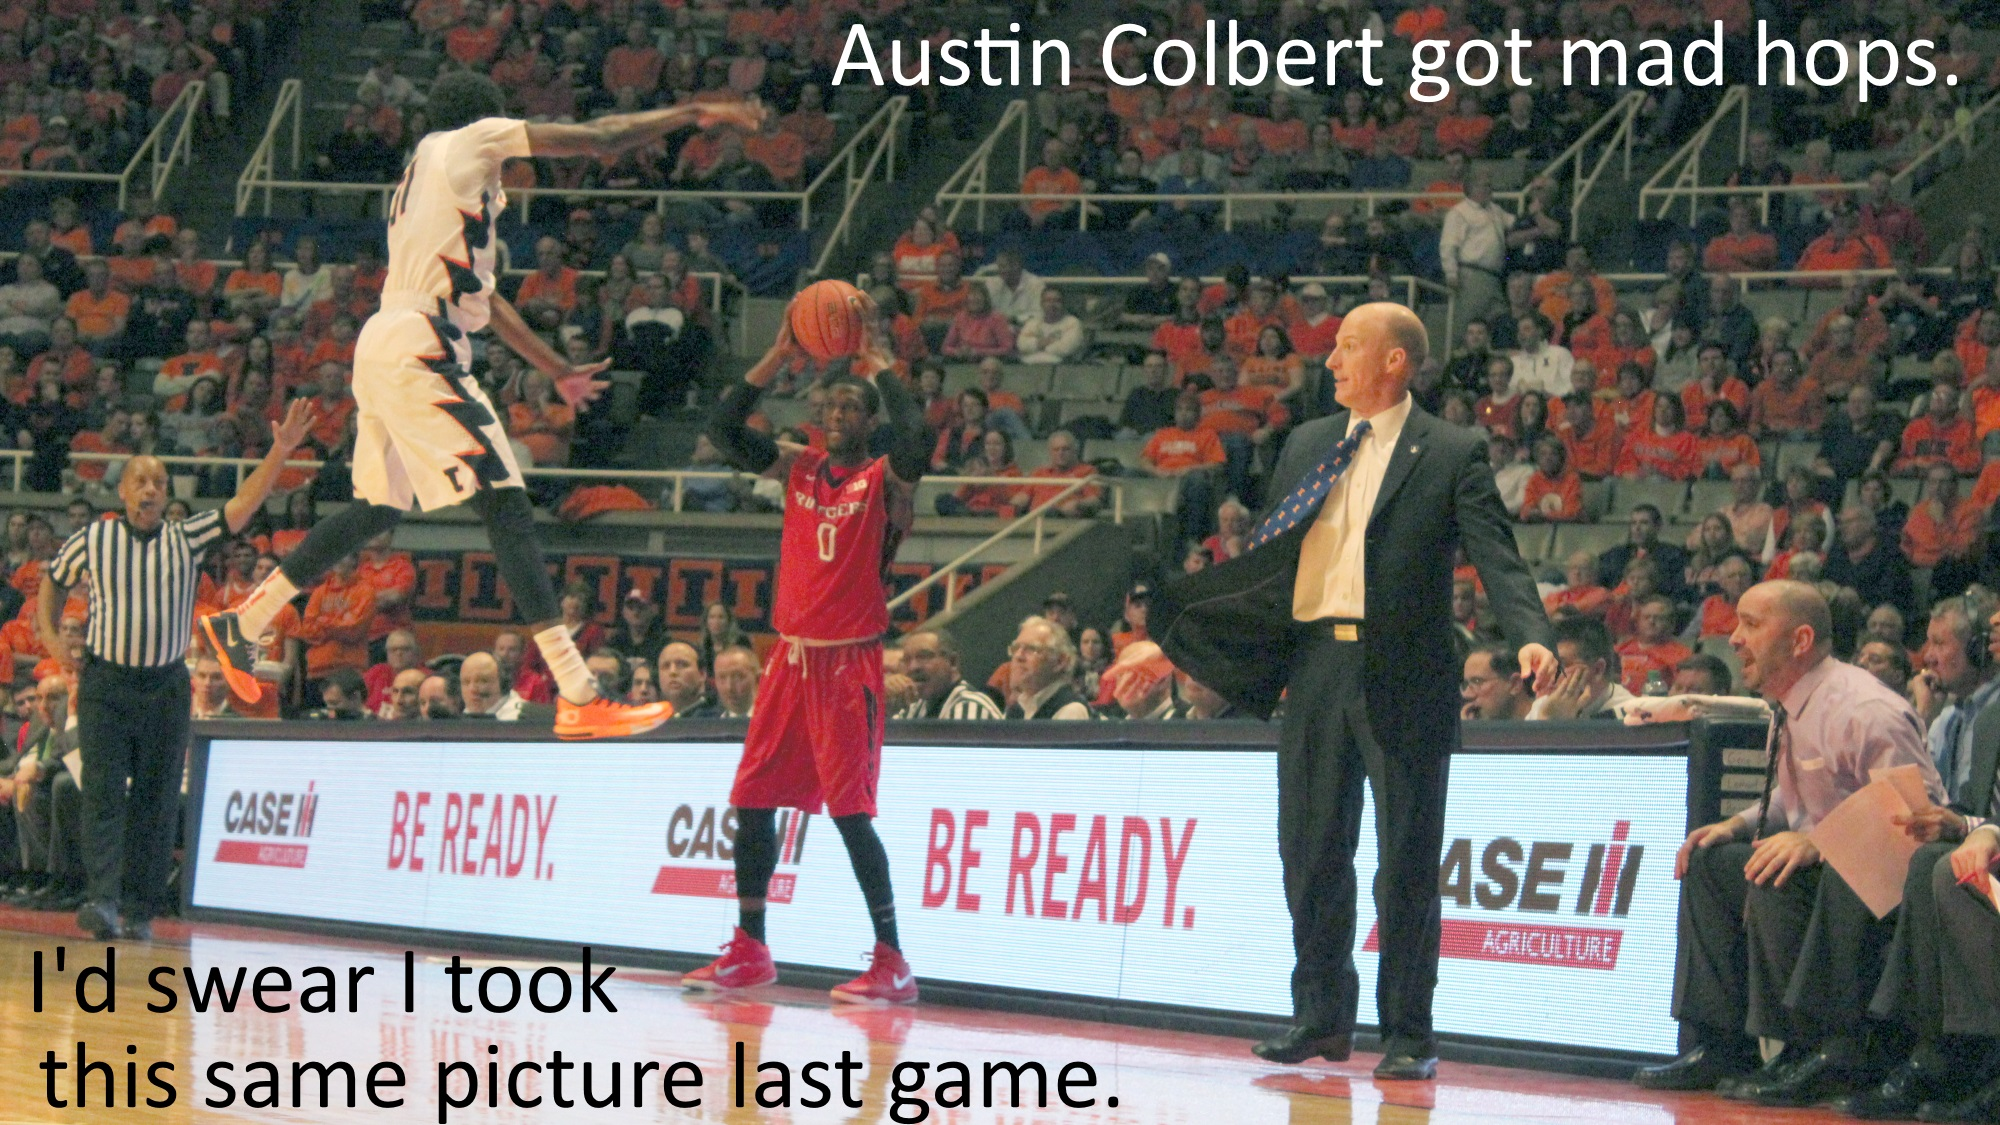 austin colbert got mad hops